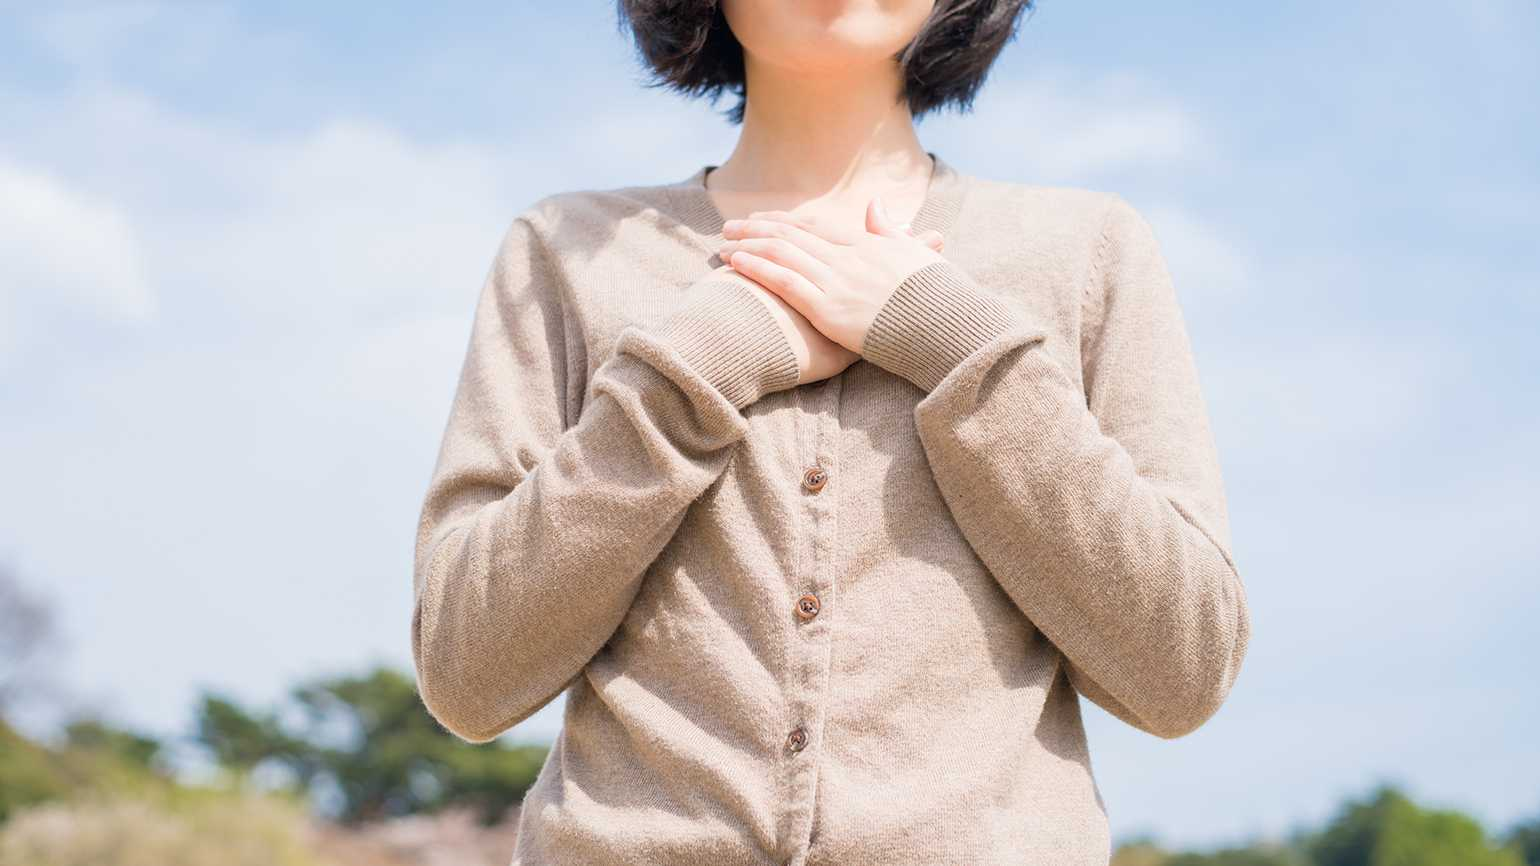 A woman clasps her hands to her chest in gratitude